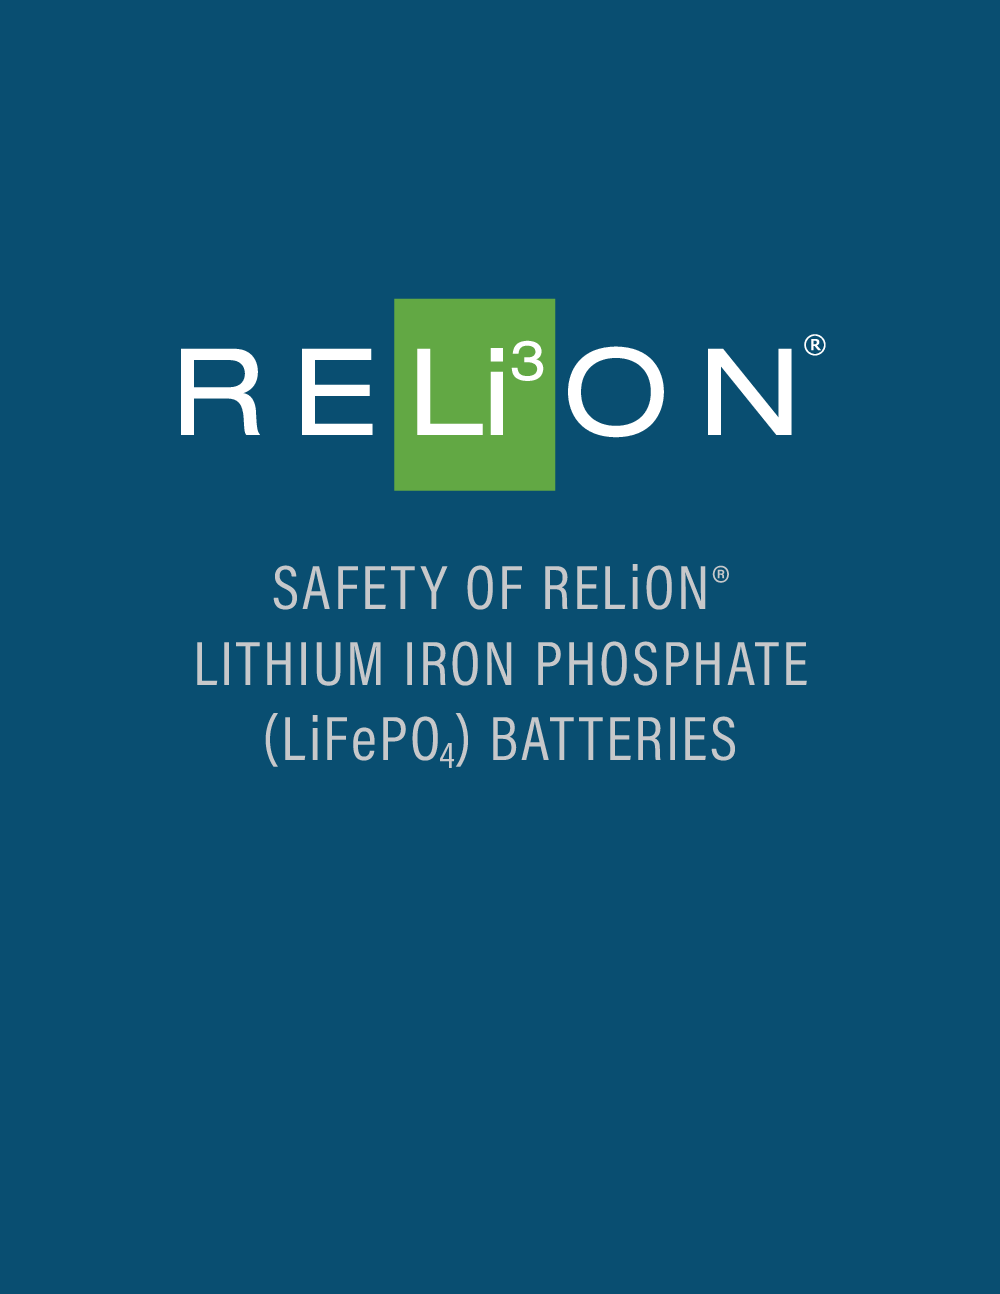 Relion_SafetyLithiumBattery